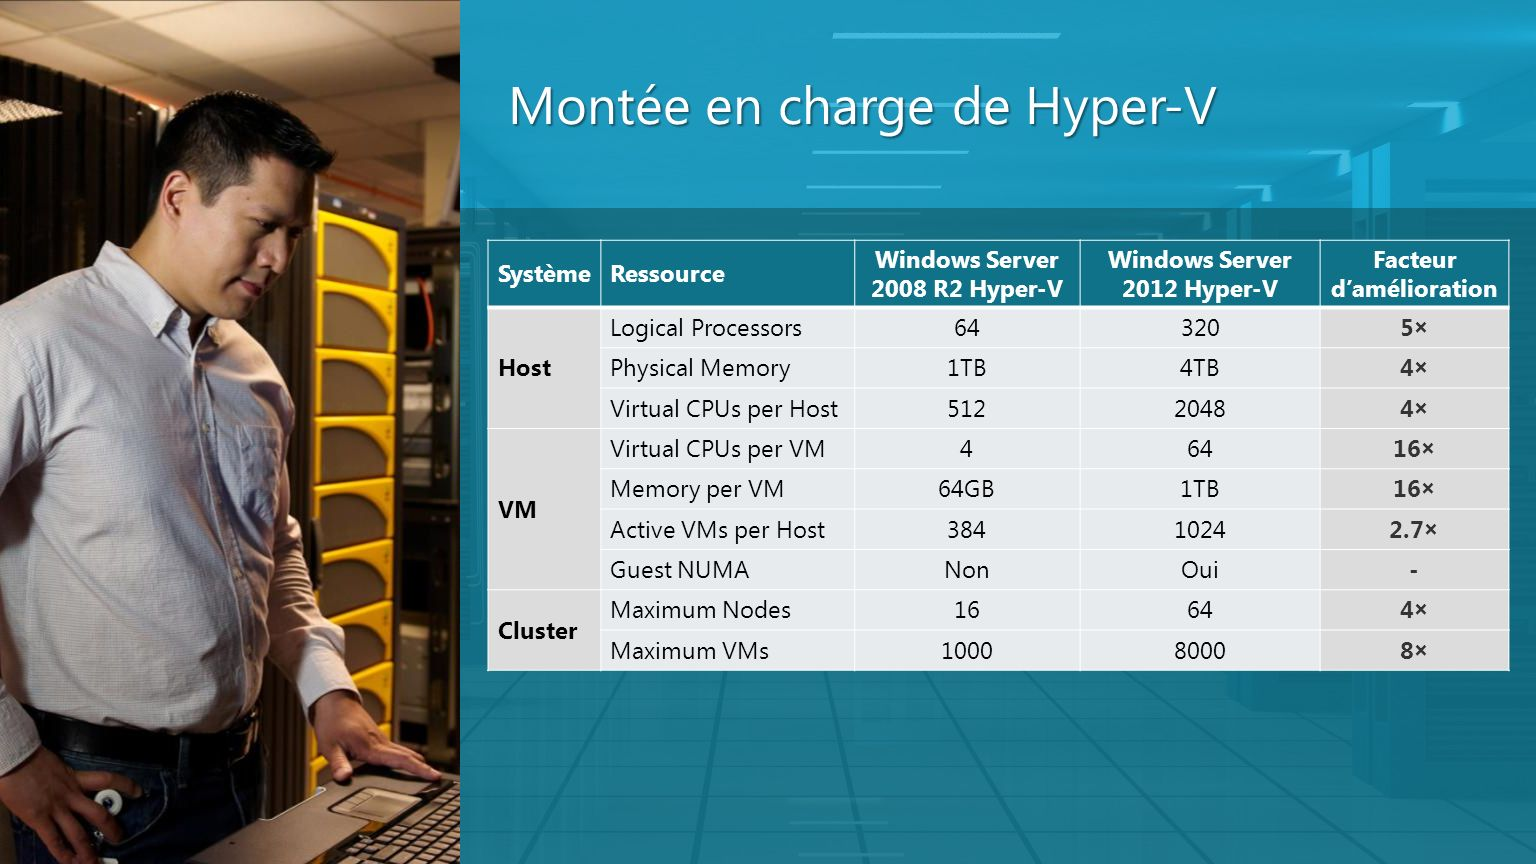 Comparaison à VMware Capability Windows Server 2012 Hyper-V VMware vSphere Hypervisor 5.1 VMware vSphere 5.1 Enterprise Plus Extensible SwitchOuiNonReplaceable 1 Confirmed Partner Extensions4Non2 Private Virtual LAN (PVLAN)OuiNonvCNS/Partner ARP Spoofing ProtectionOuiNonvCNS/Partner DHCP Snooping ProtectionOuiNonvCNS/Partner Virtual Port ACLsOuiNonvCNS/Partner Trunk Mode to Virtual MachinesOuiNon Port MonitoringOuiPer Port GroupOui 2 Port MirroringOuiPer Port GroupOui 2 1.The vSphere Distributed Switch (required for PVLAN capability) is available only in the Enterprise Plus edition of vSphere 5.1 and thus far, seems to be replaceable (By Partners such as Cisco/IBM) rather than extensible.